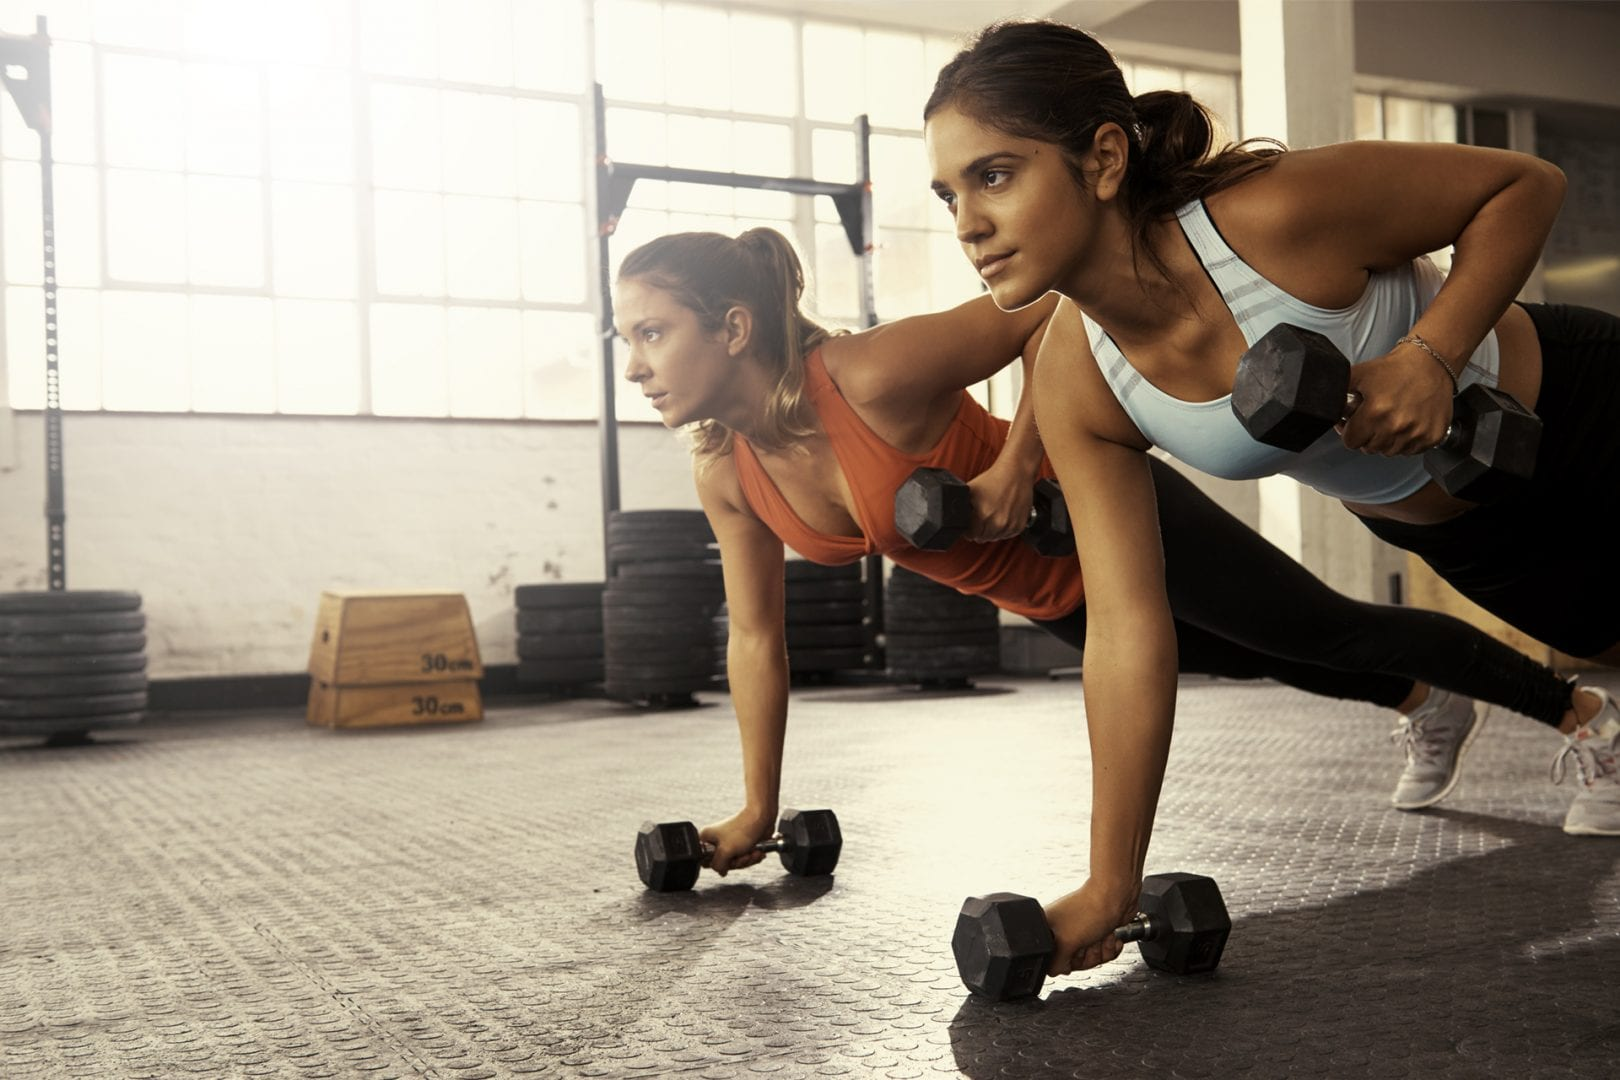 two-women-on-gym-floor-holding-weights-doing-pull-ups-in-fitness-center